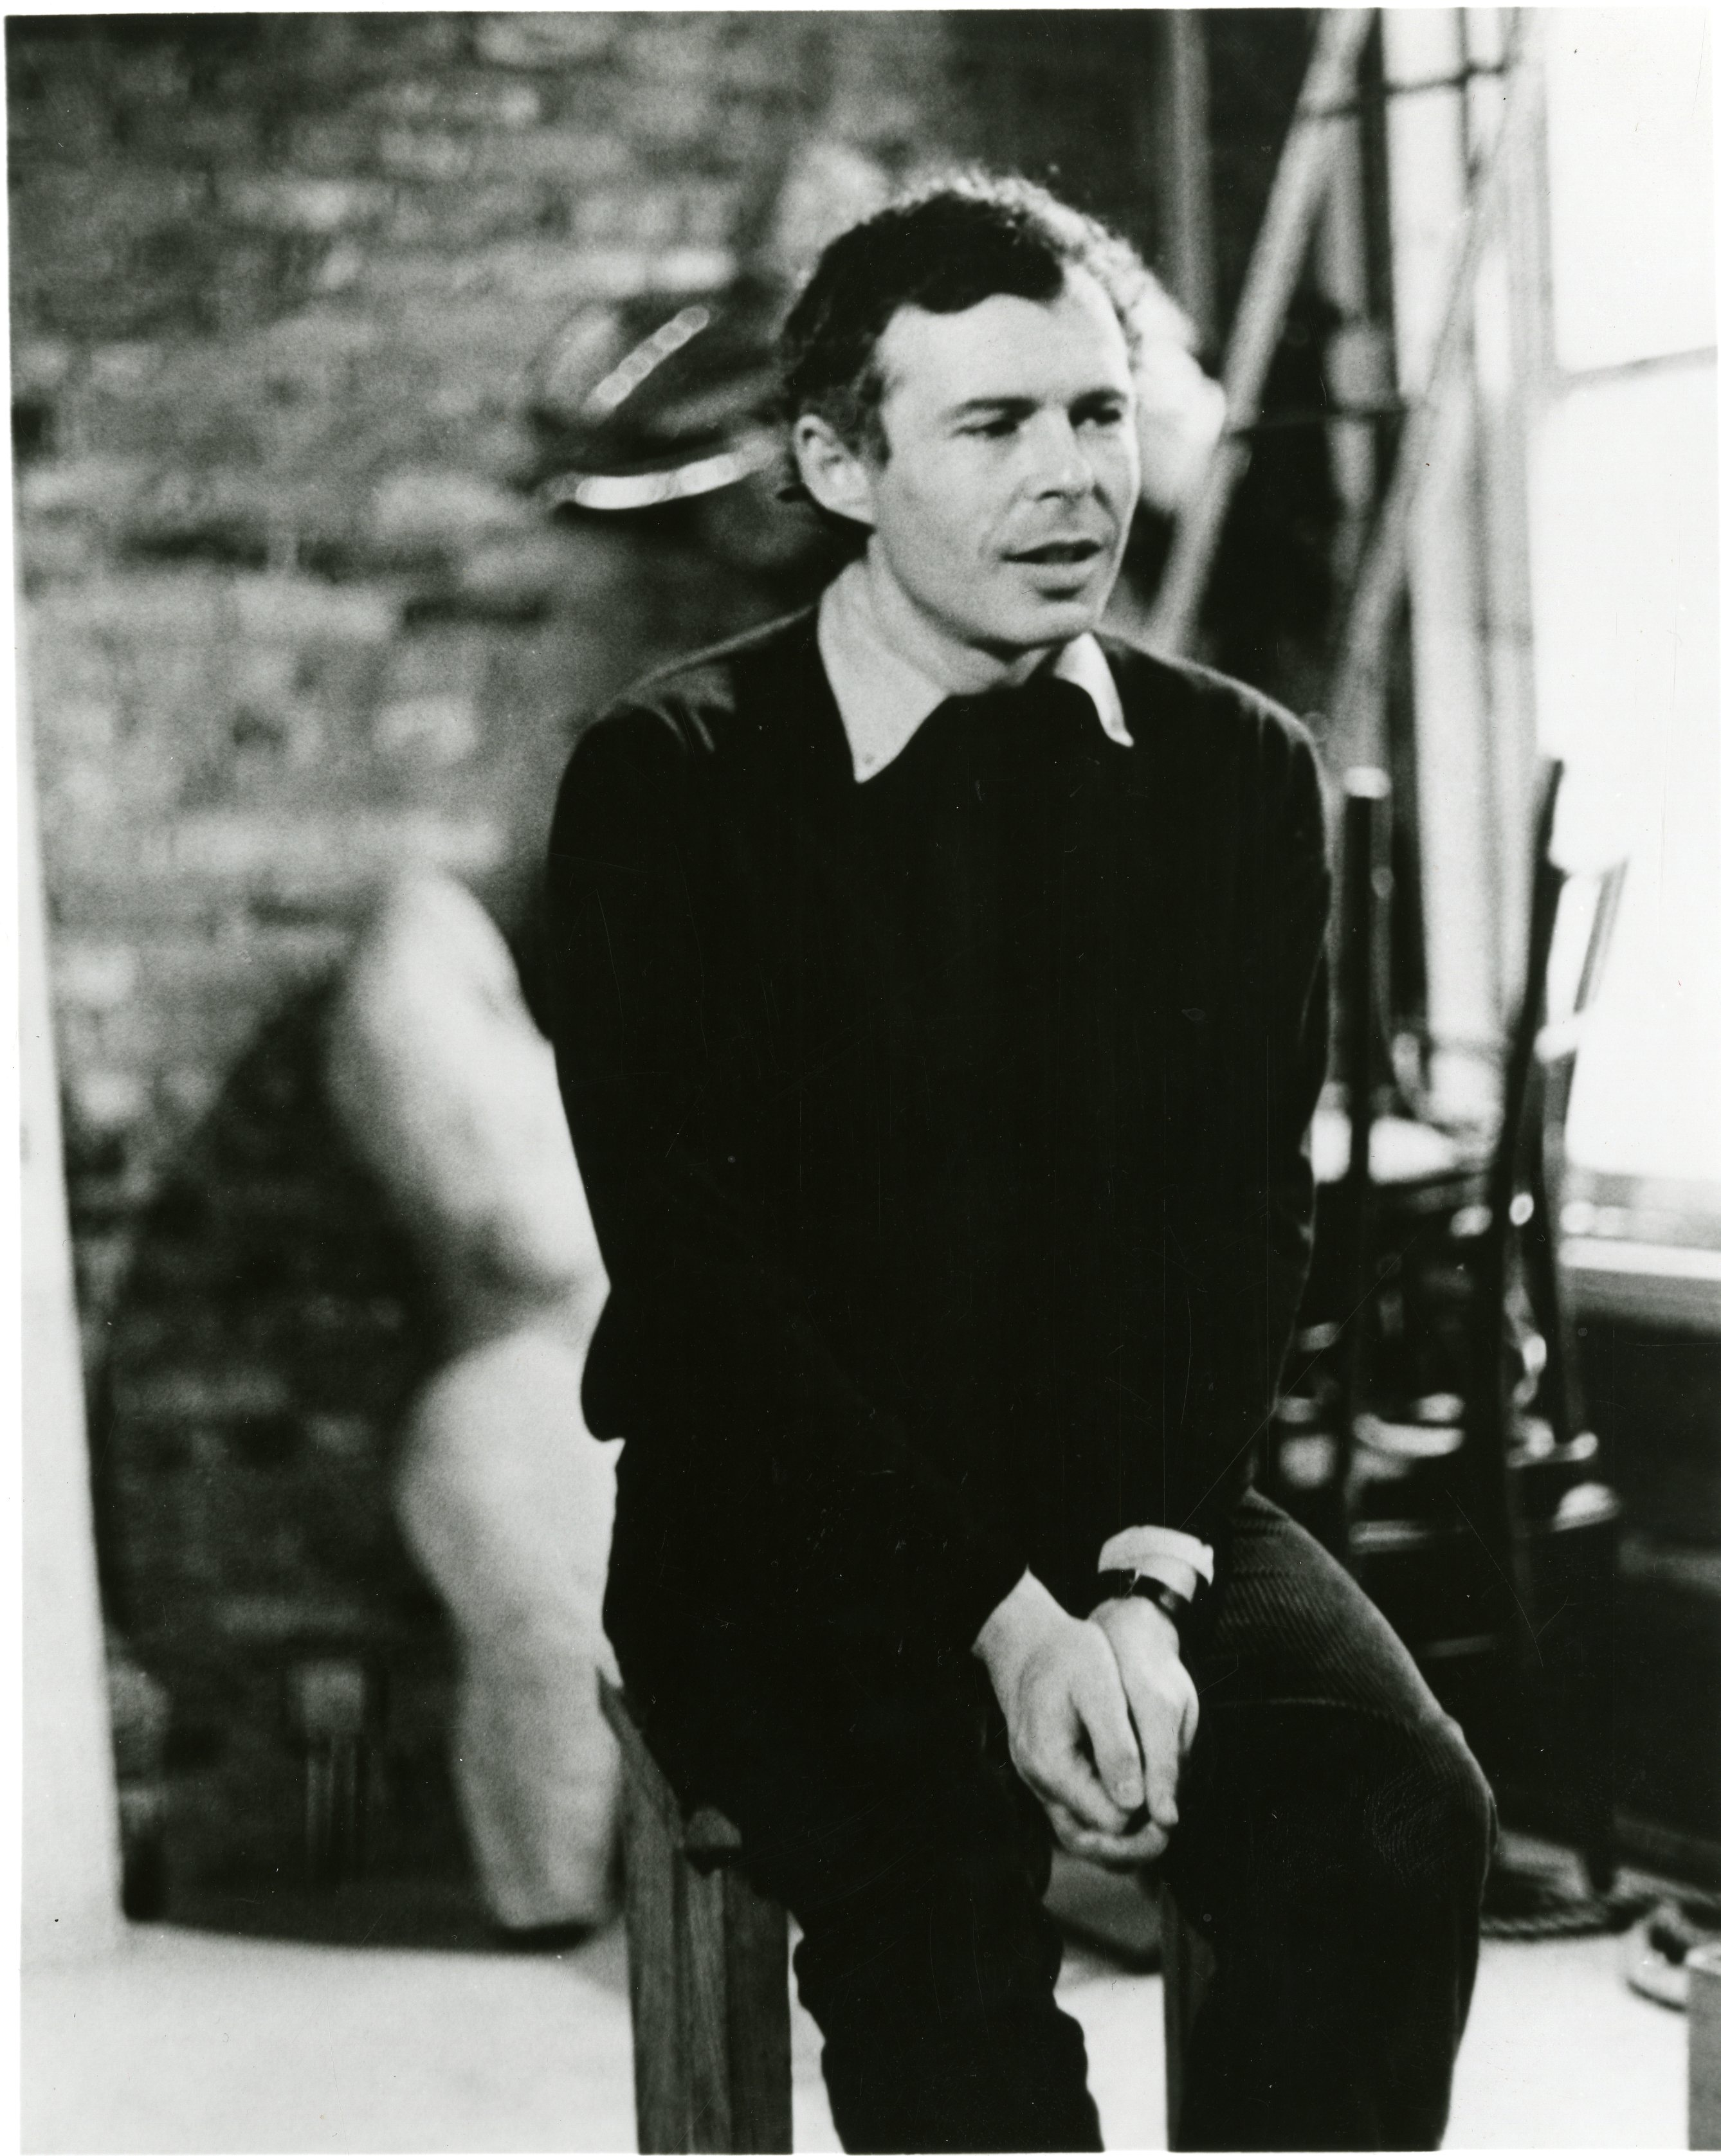 A portrait of Jean-Claude van Itallie as a younger man, seated in a studi with his hands clasped and wearing a collared shirt and sweater